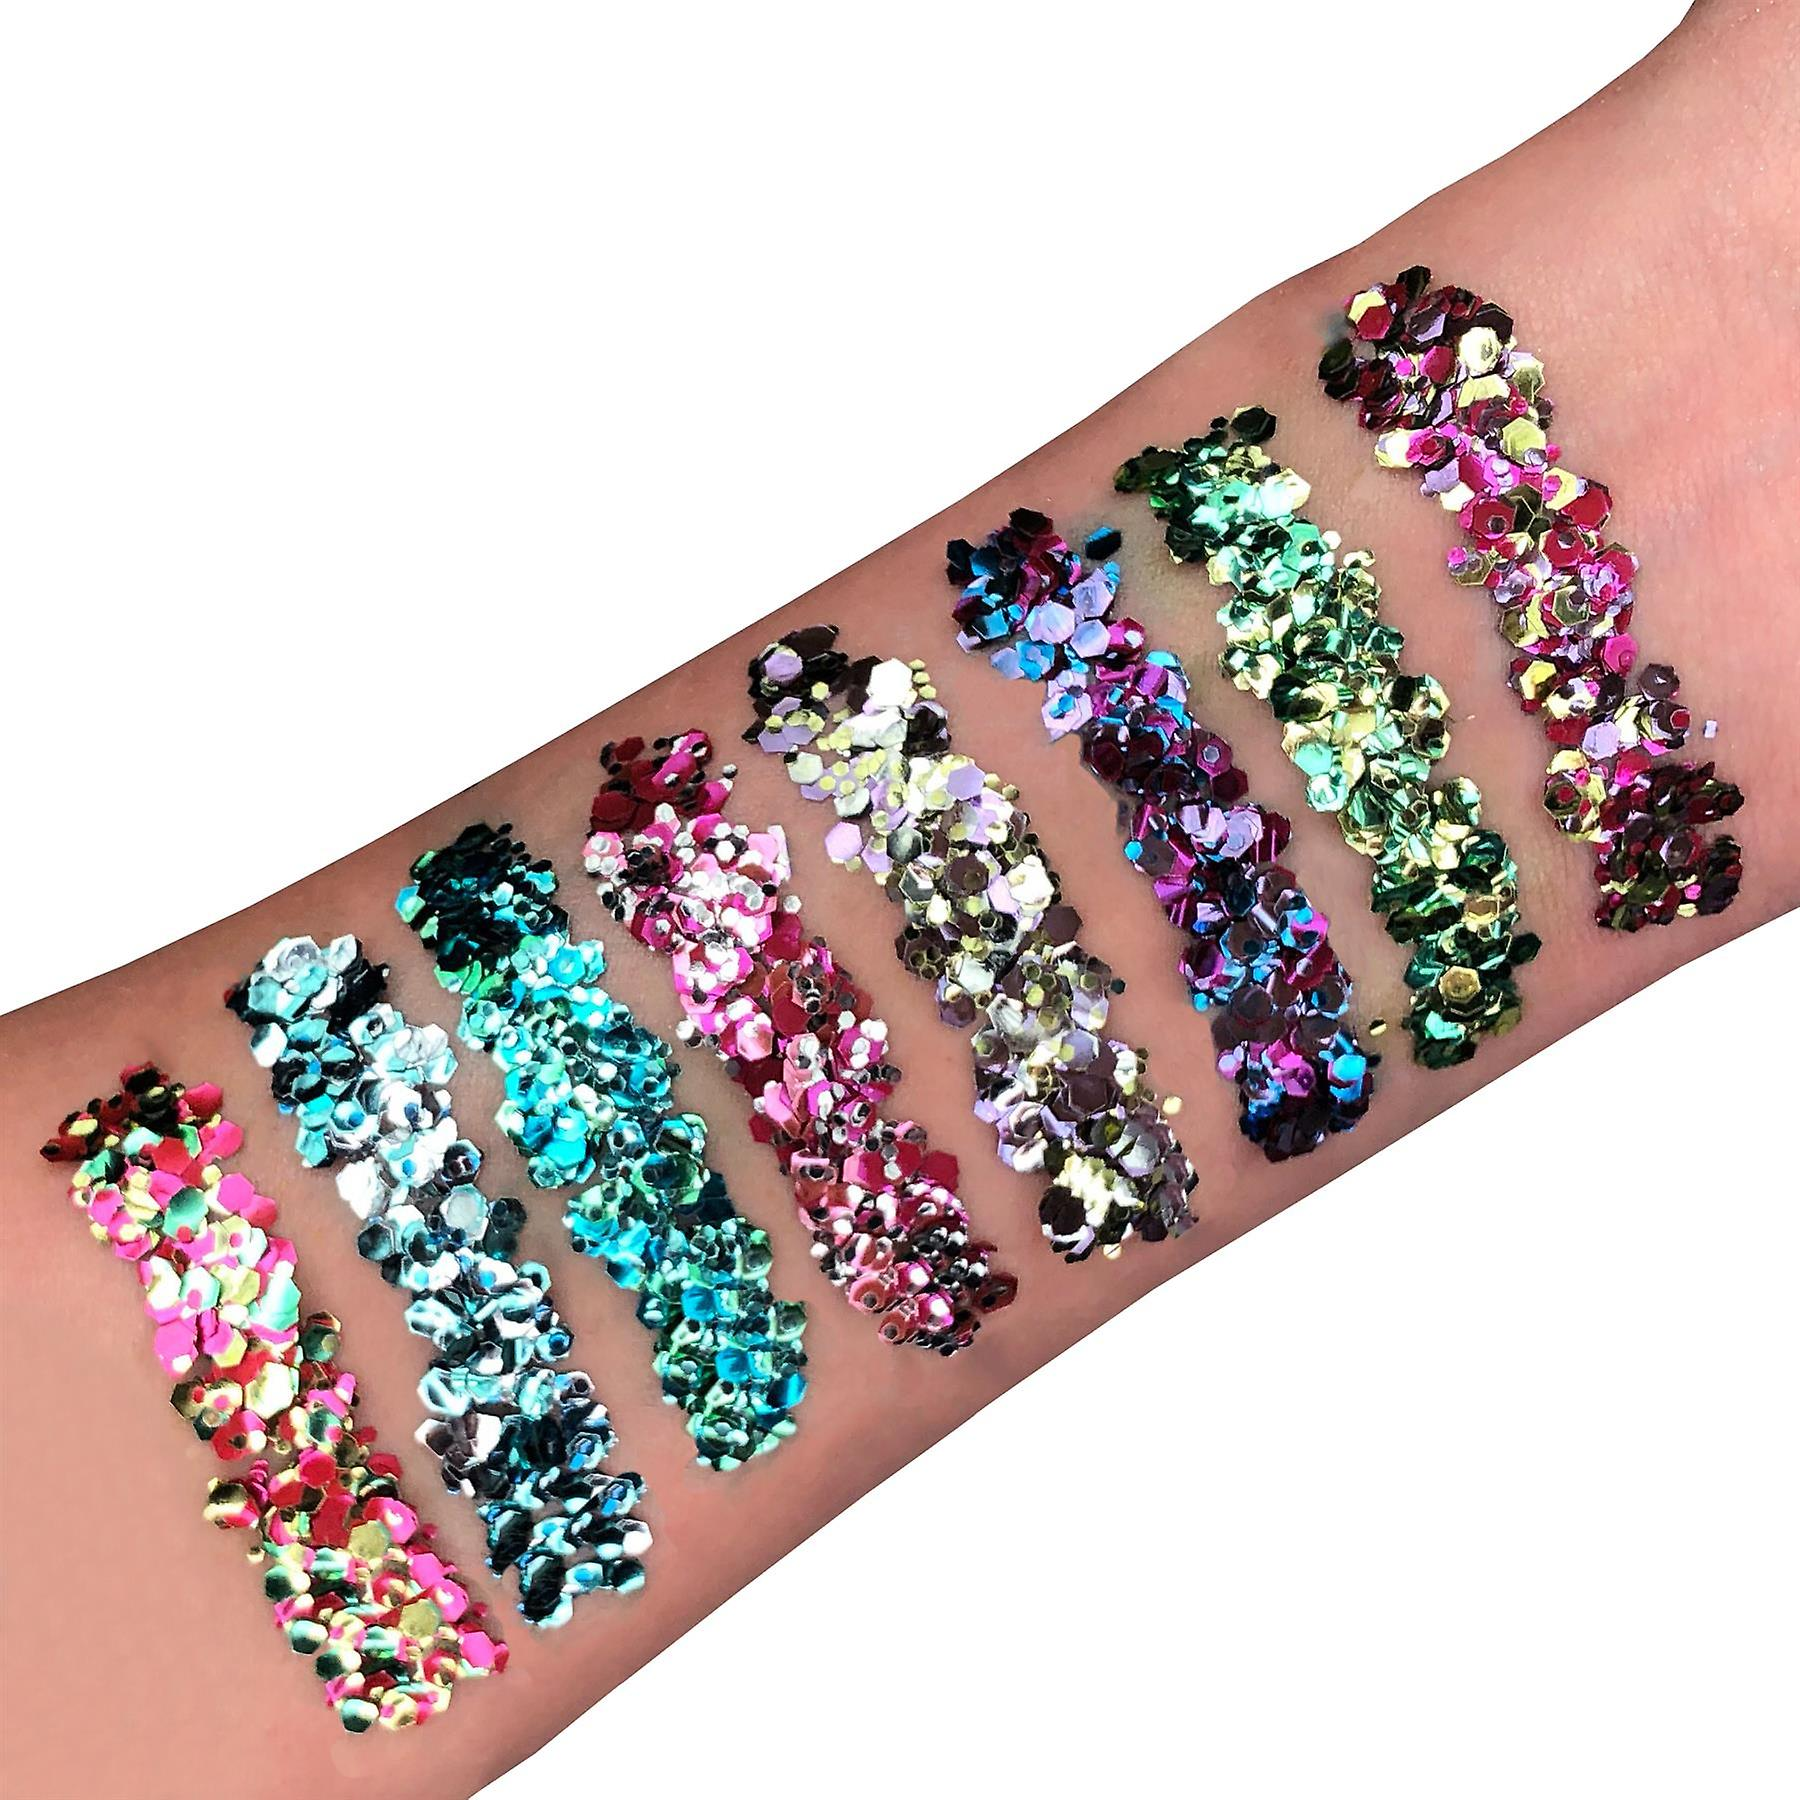 Mystic Bio Biodegradable Eco Chunky Glitter by Moon Glitter - 100% Cosmetic Bio Glitter for Face, Body, Nails, Hair and Lips - 3g - Set of 8